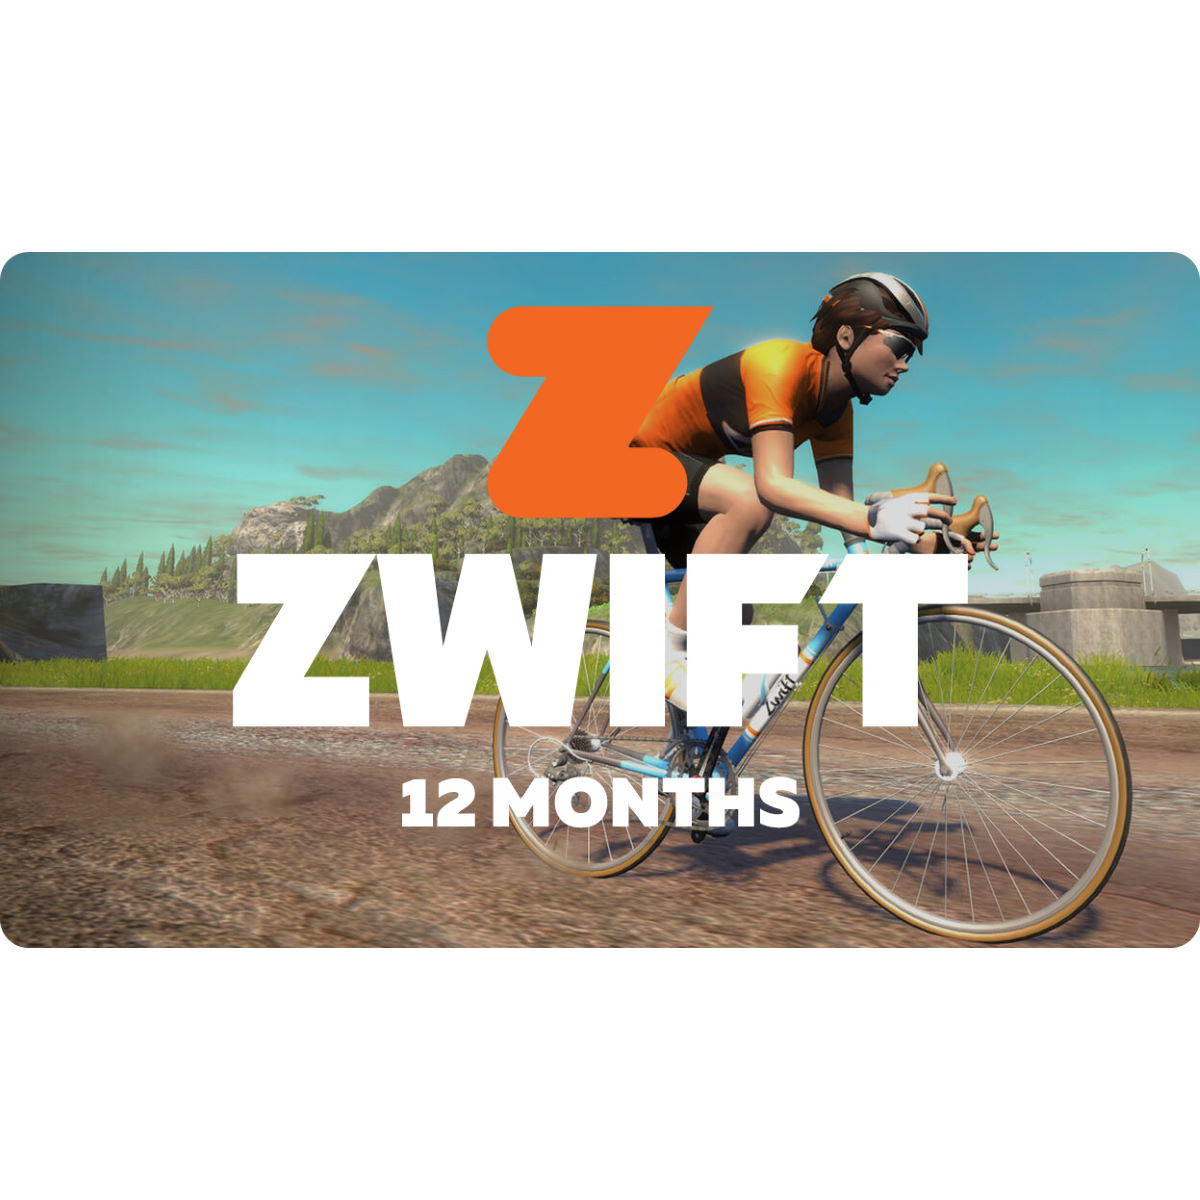 Zwift 12 Month Membership - Vales regalo